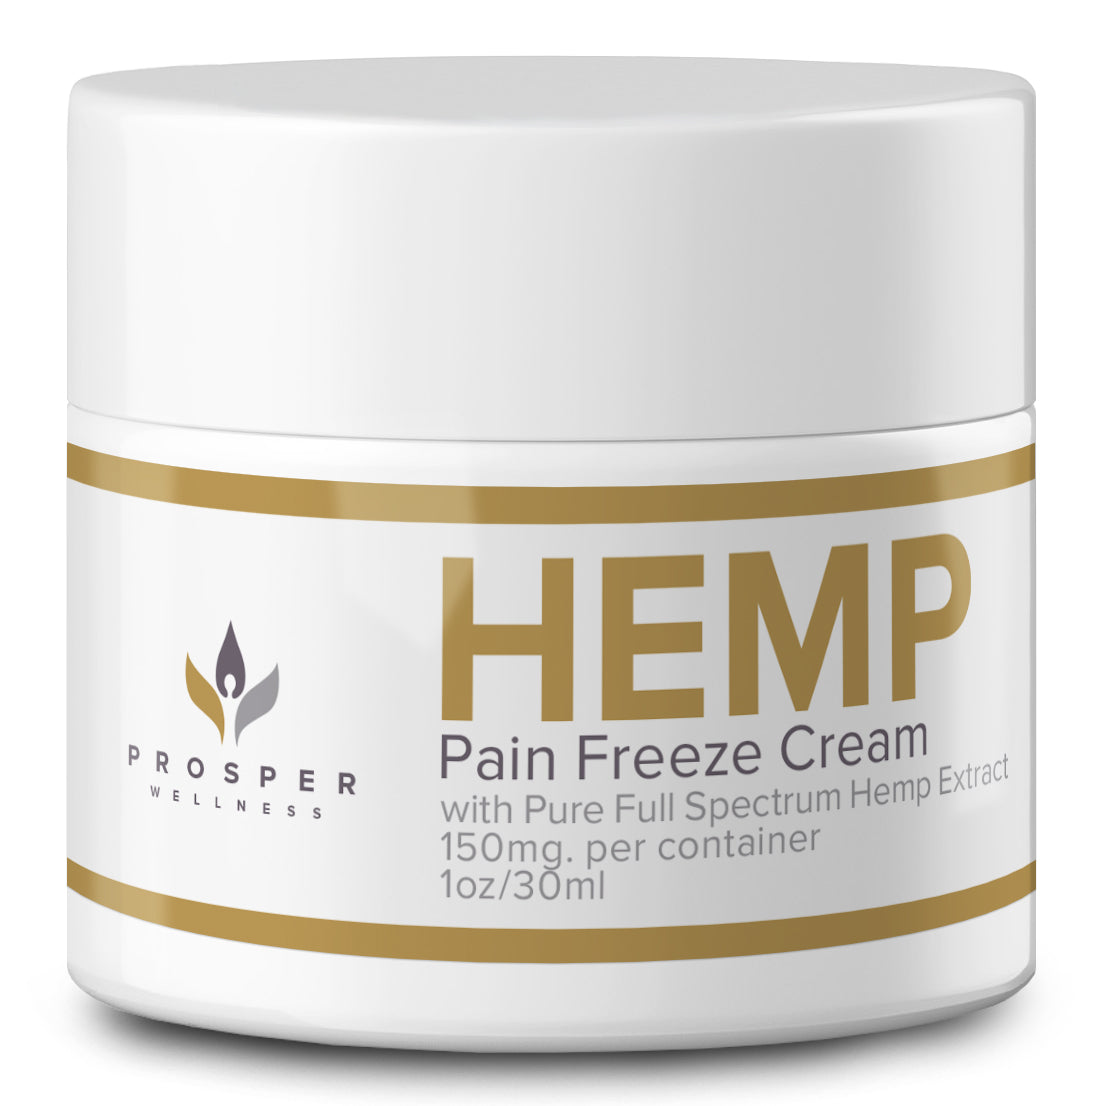 5-in-1 Full Spectrum Hemp Extract Pain Freeze Cream